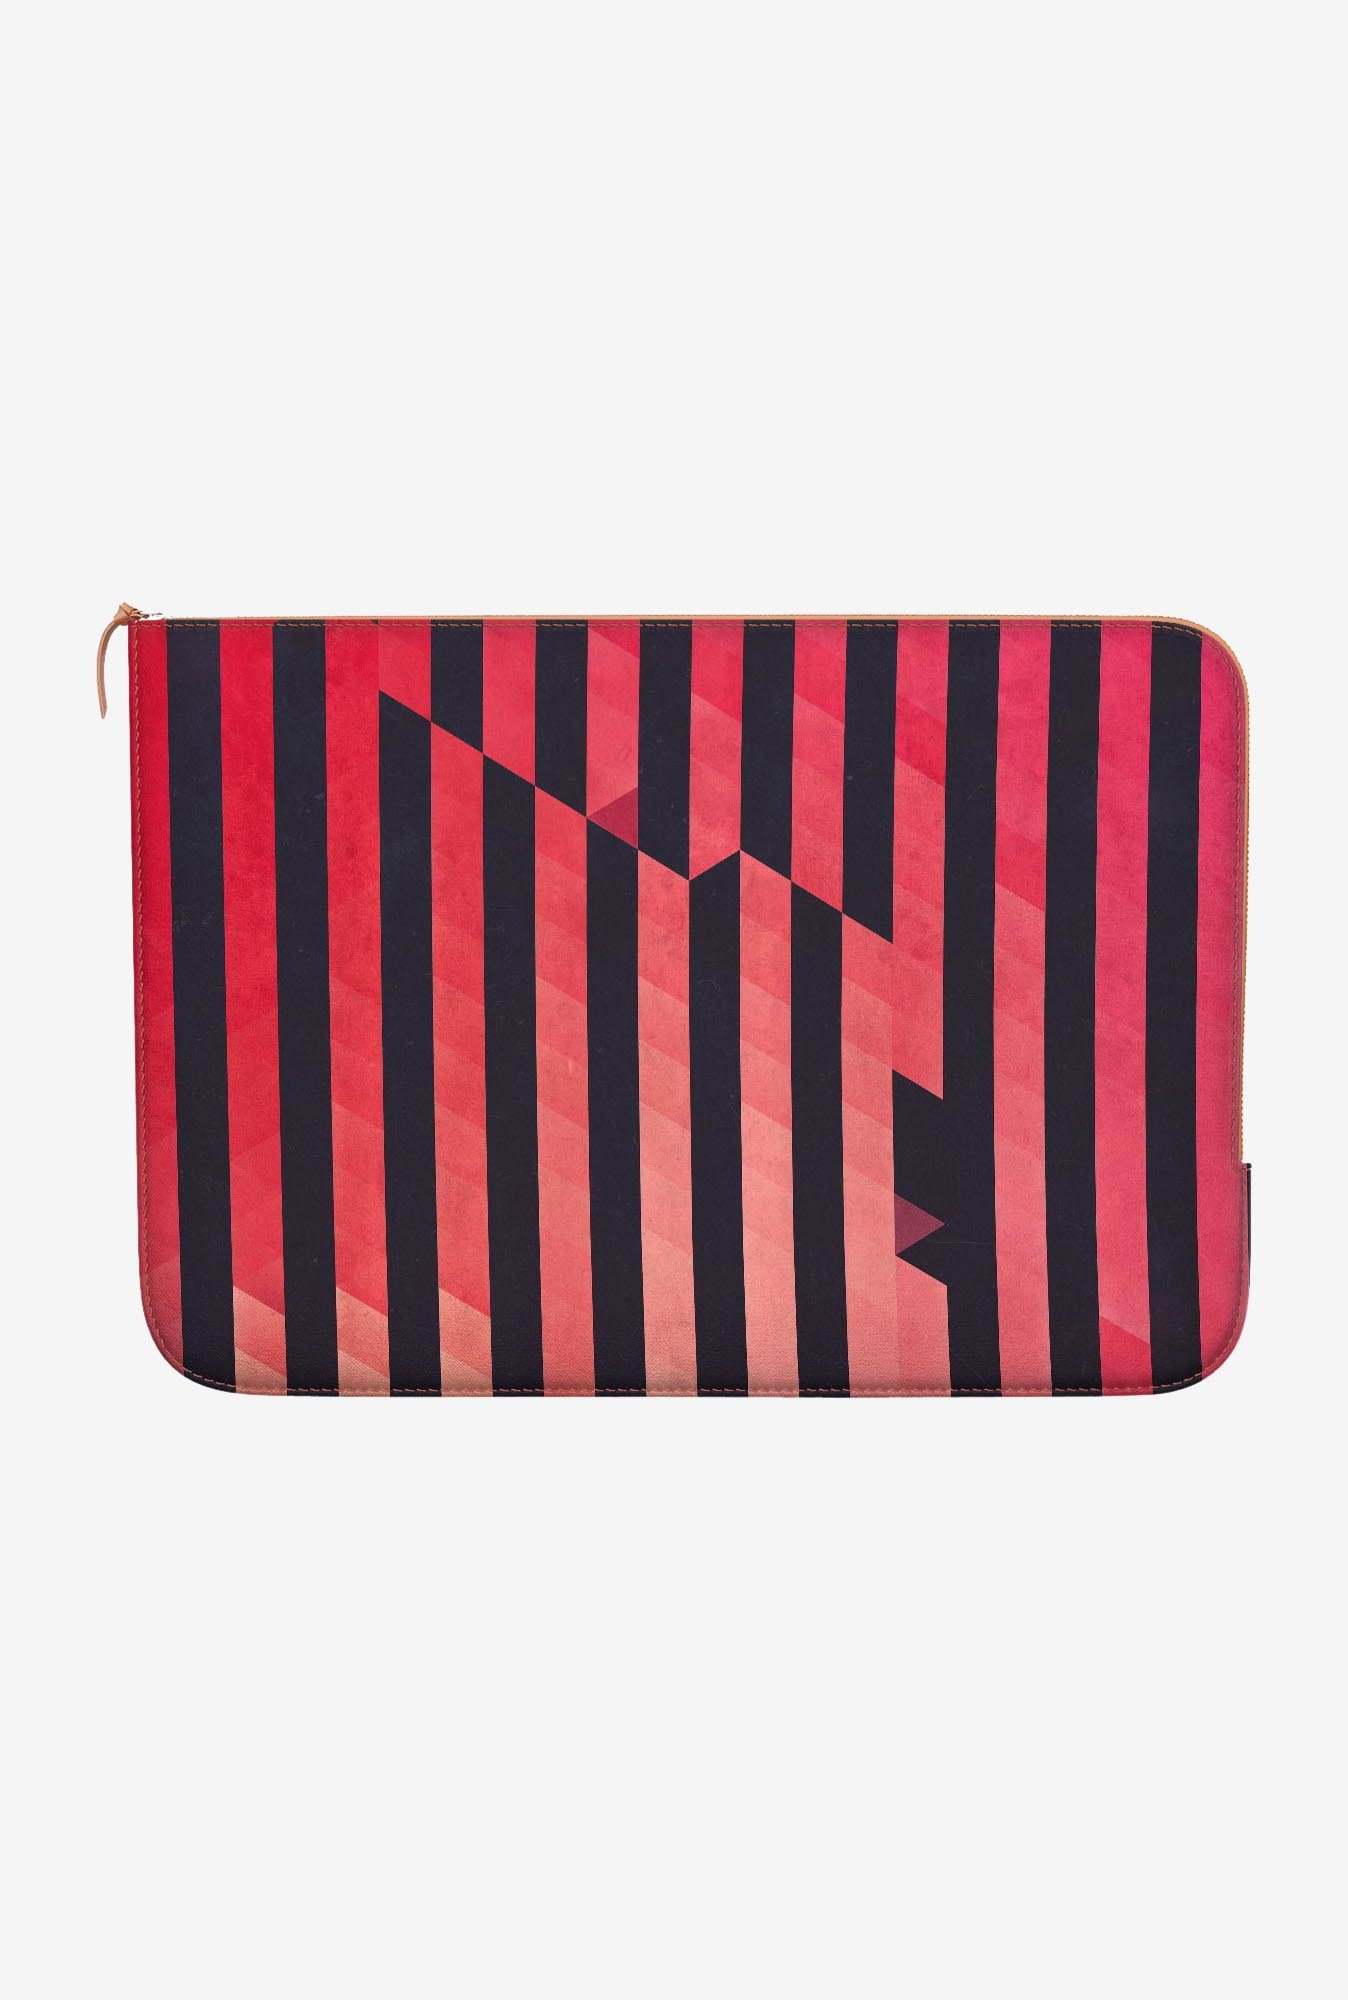 "DailyObjects Slyg Stryyp Macbook Air 11"" Zippered Sleeve"